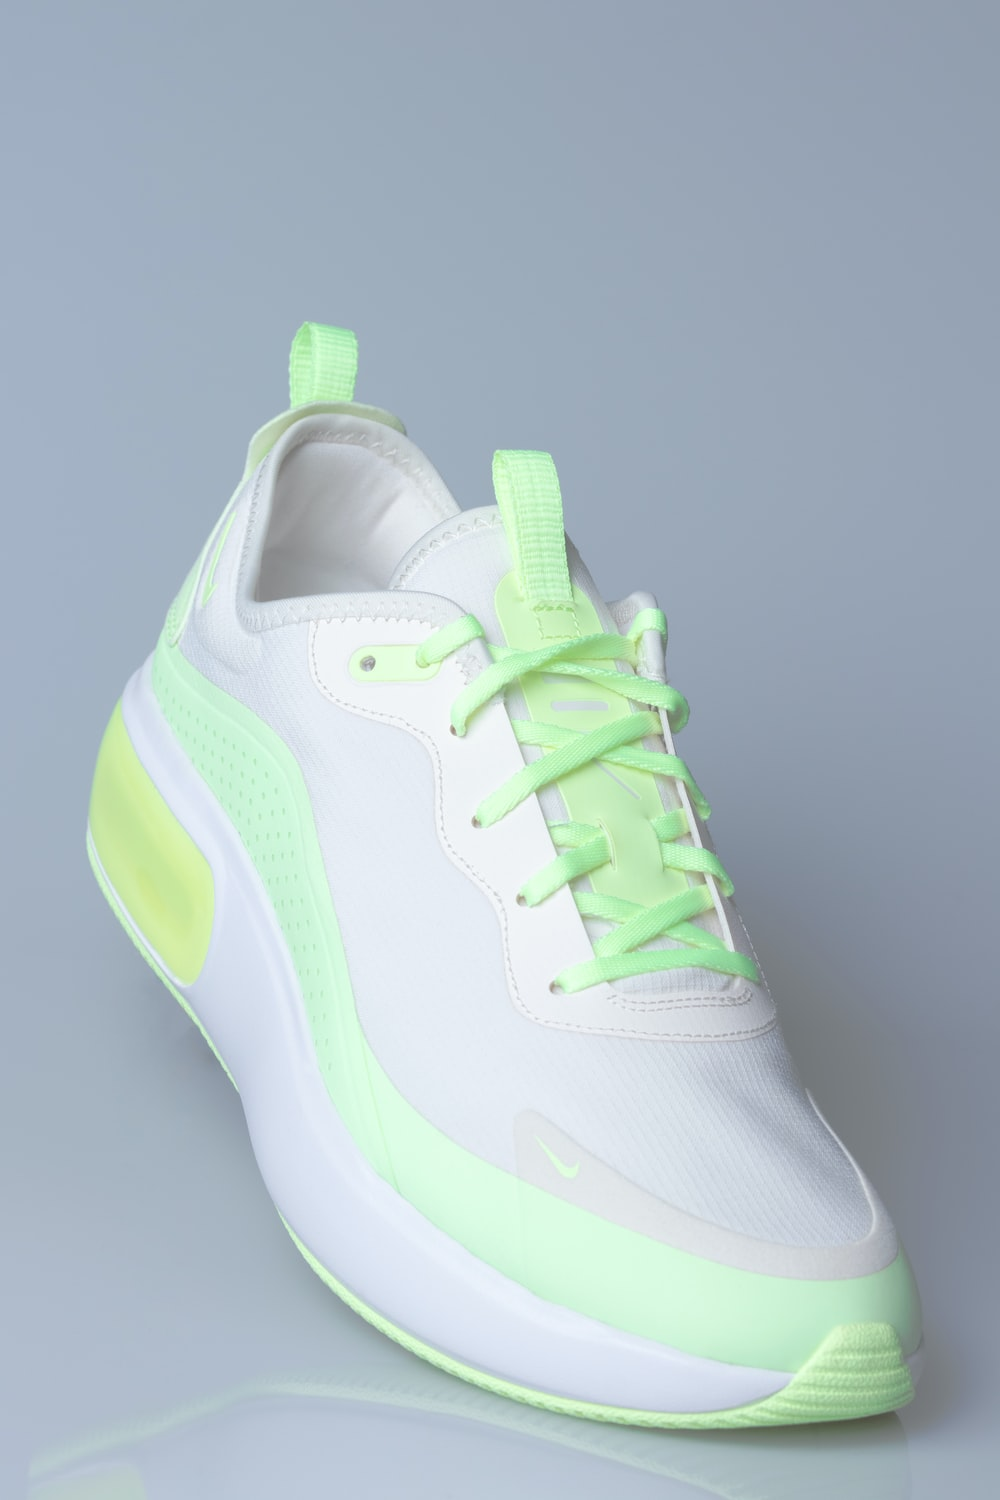 white and green nike air max